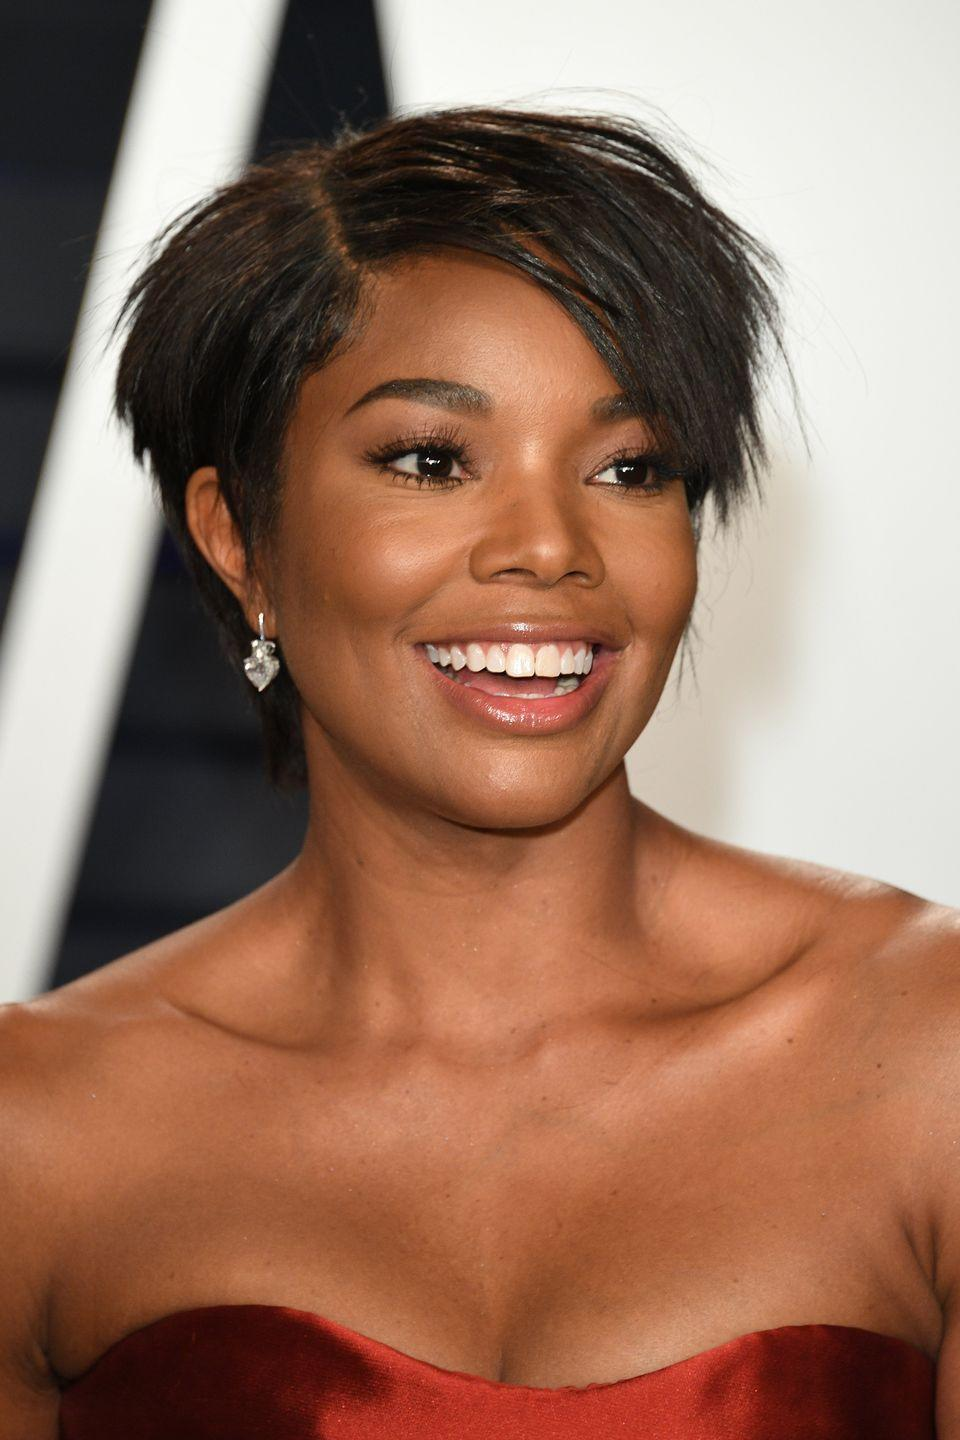 <p>Gabrielle Union's choppy pixie was short-lived, but we'd love for her to bring it back. This style holds so much shape and structure, it accentuates everything from her bone structure to her smile. </p>